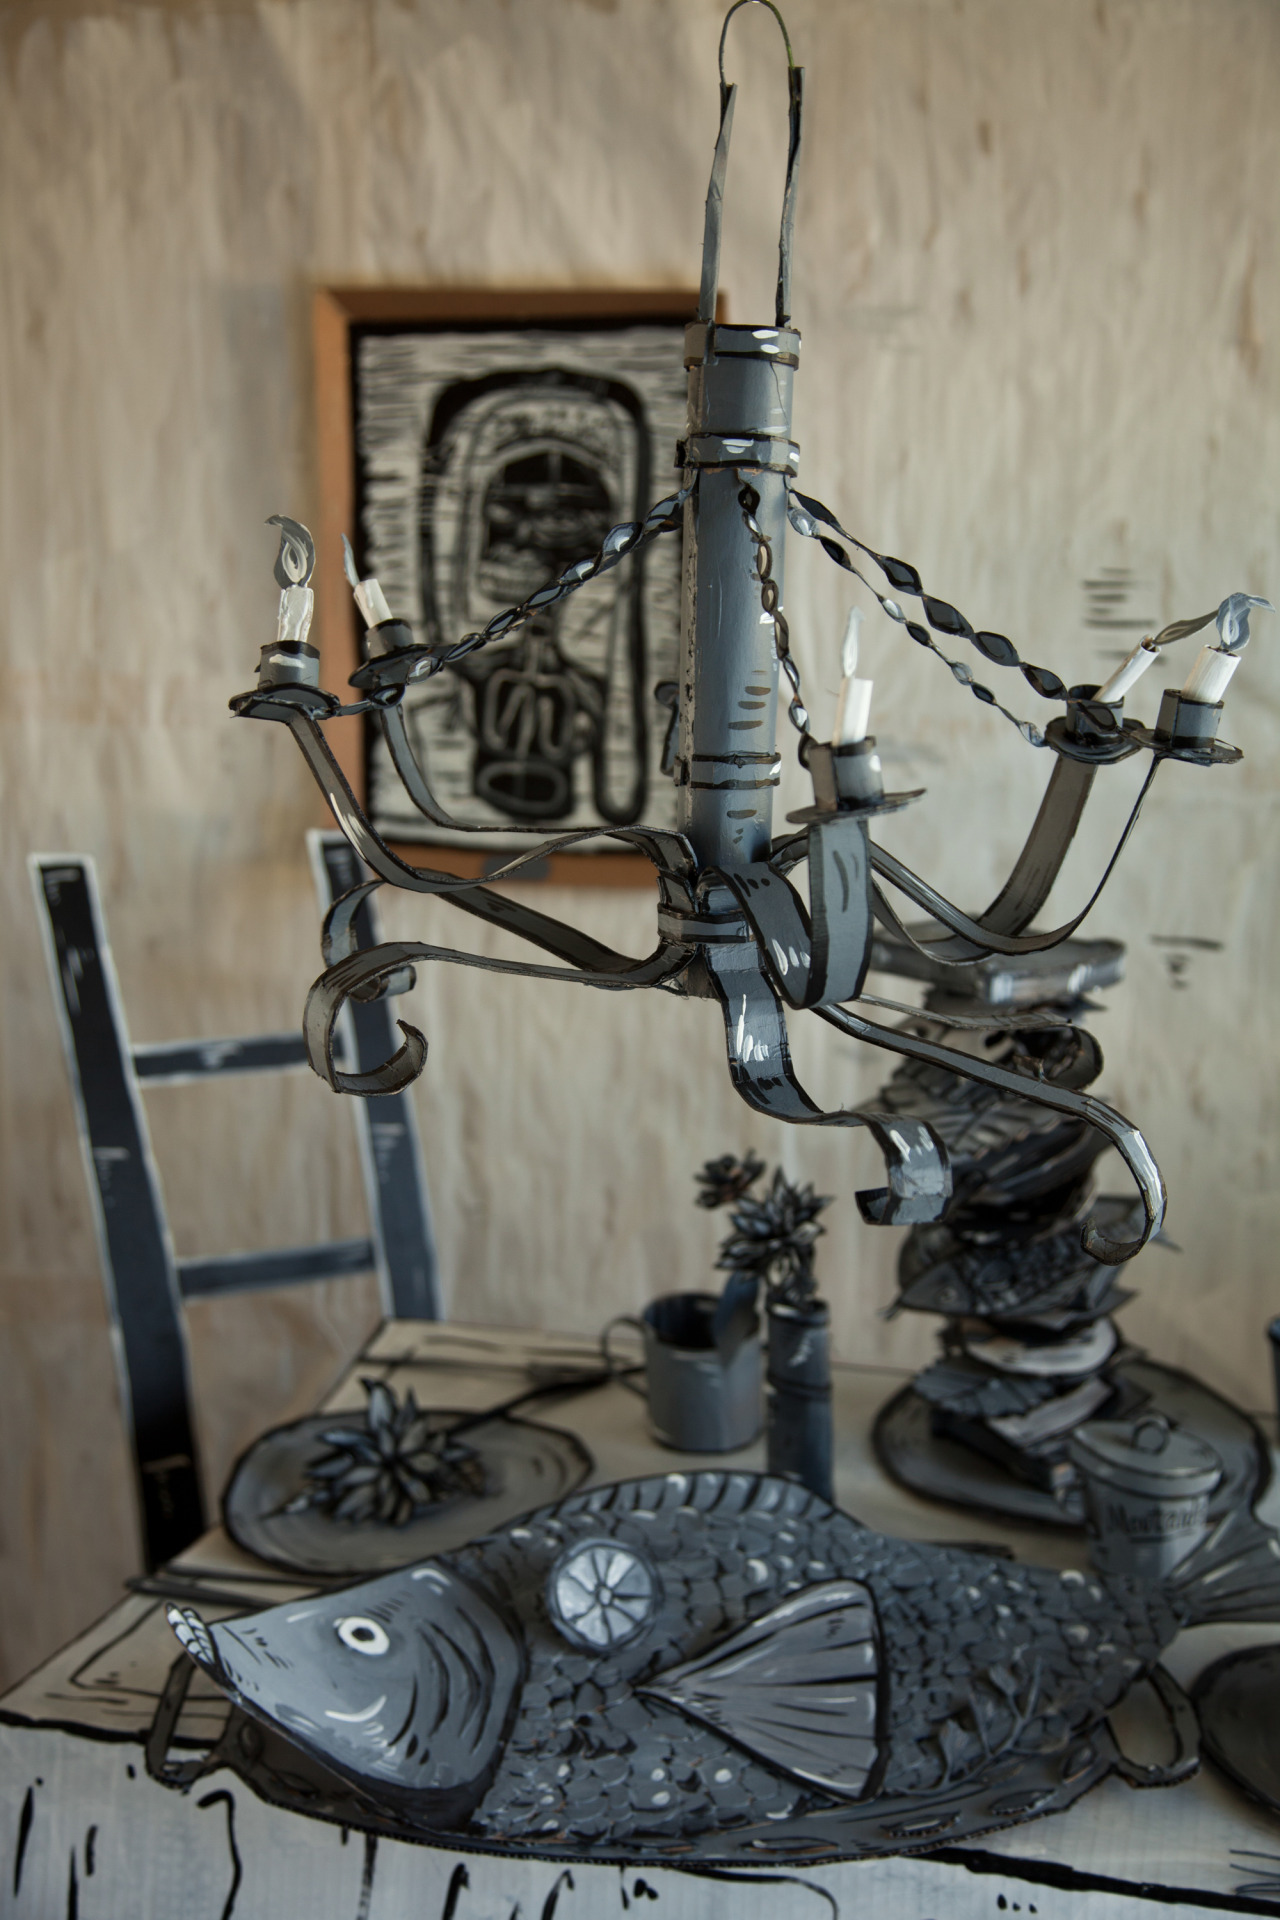 Incredible Vintage Works Fashioned in Painted Cardboard by Dosshaus - Candelabra